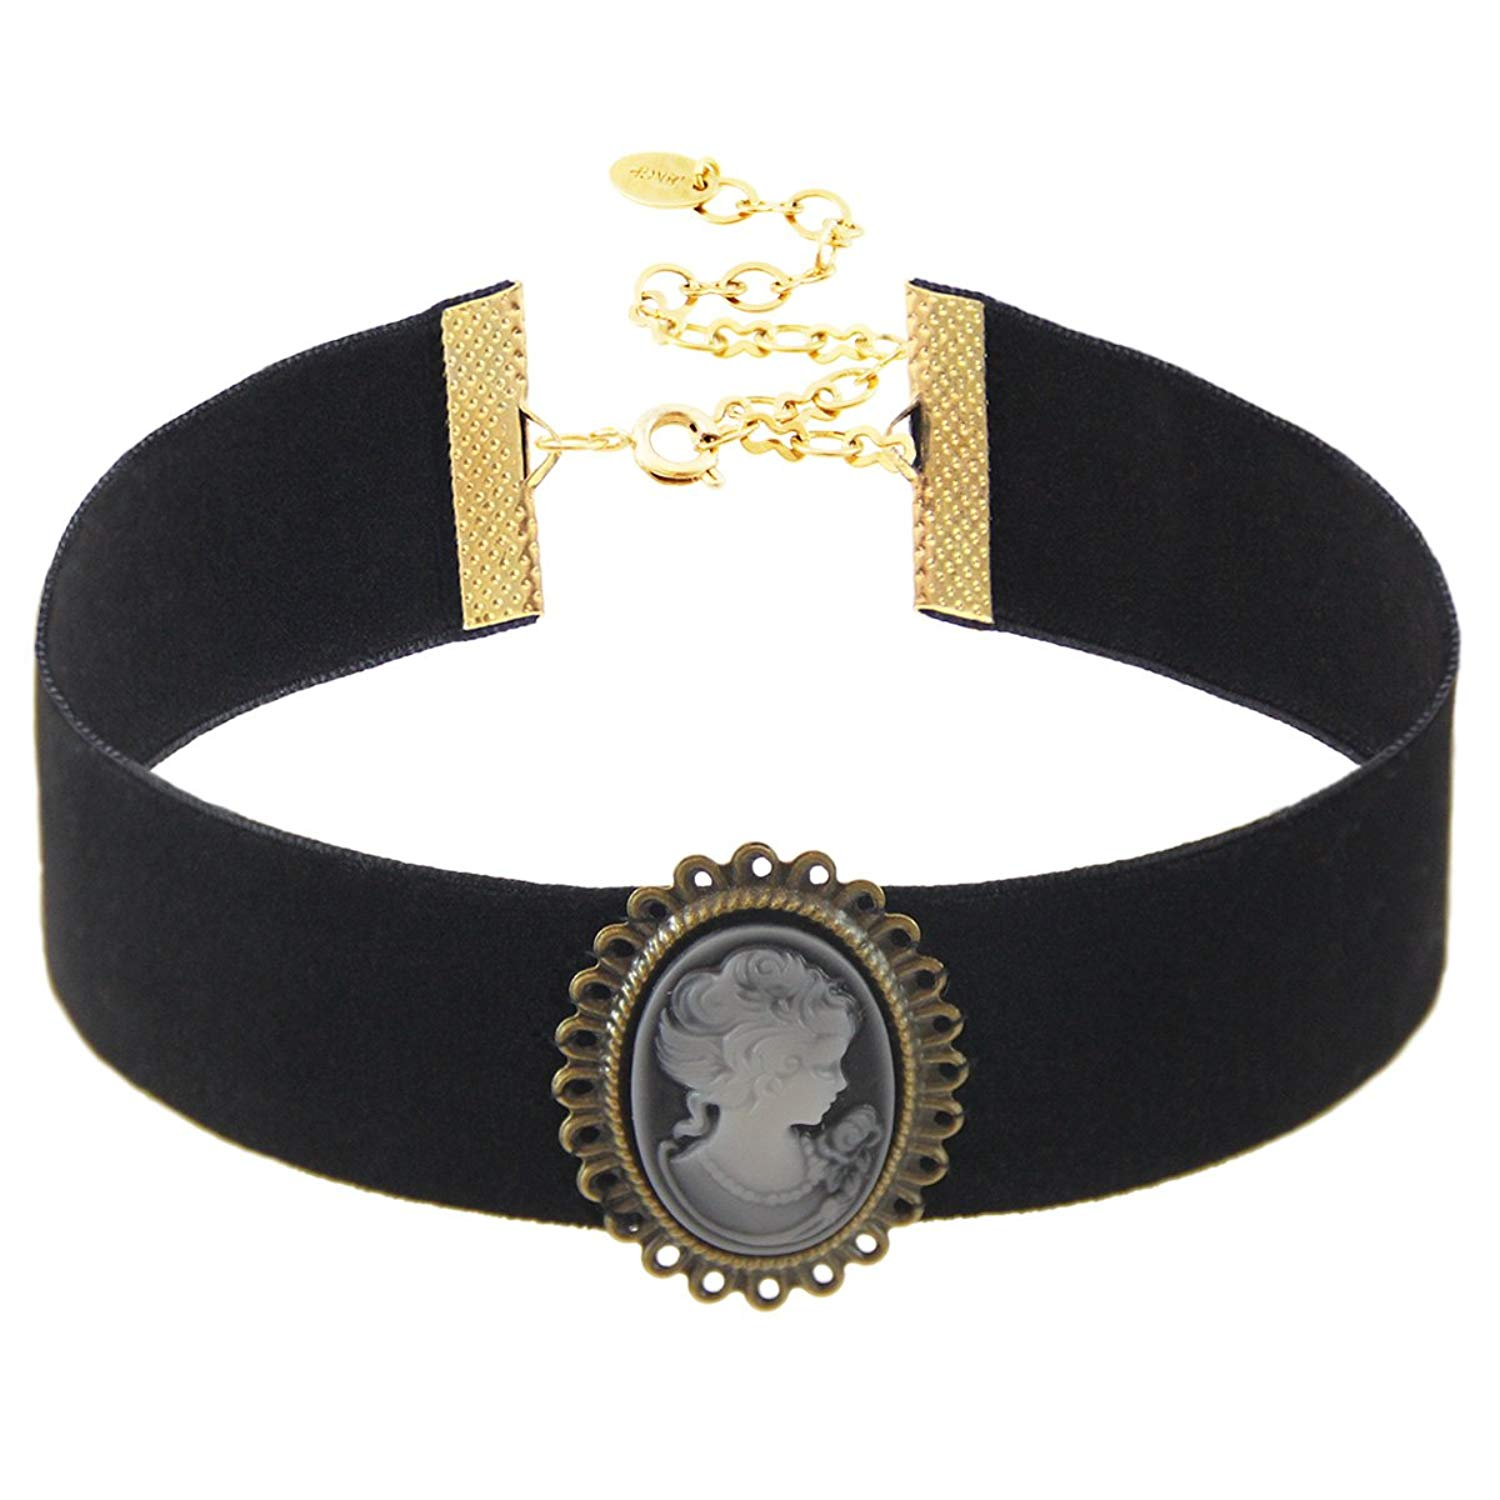 "Black Velvet Choker with Vintage Cameo Pendant, 18K Gold Plated Closure. Length: 11"" with 4"" extender, Width: 25mm. Pendant Size: 28x35 mm."